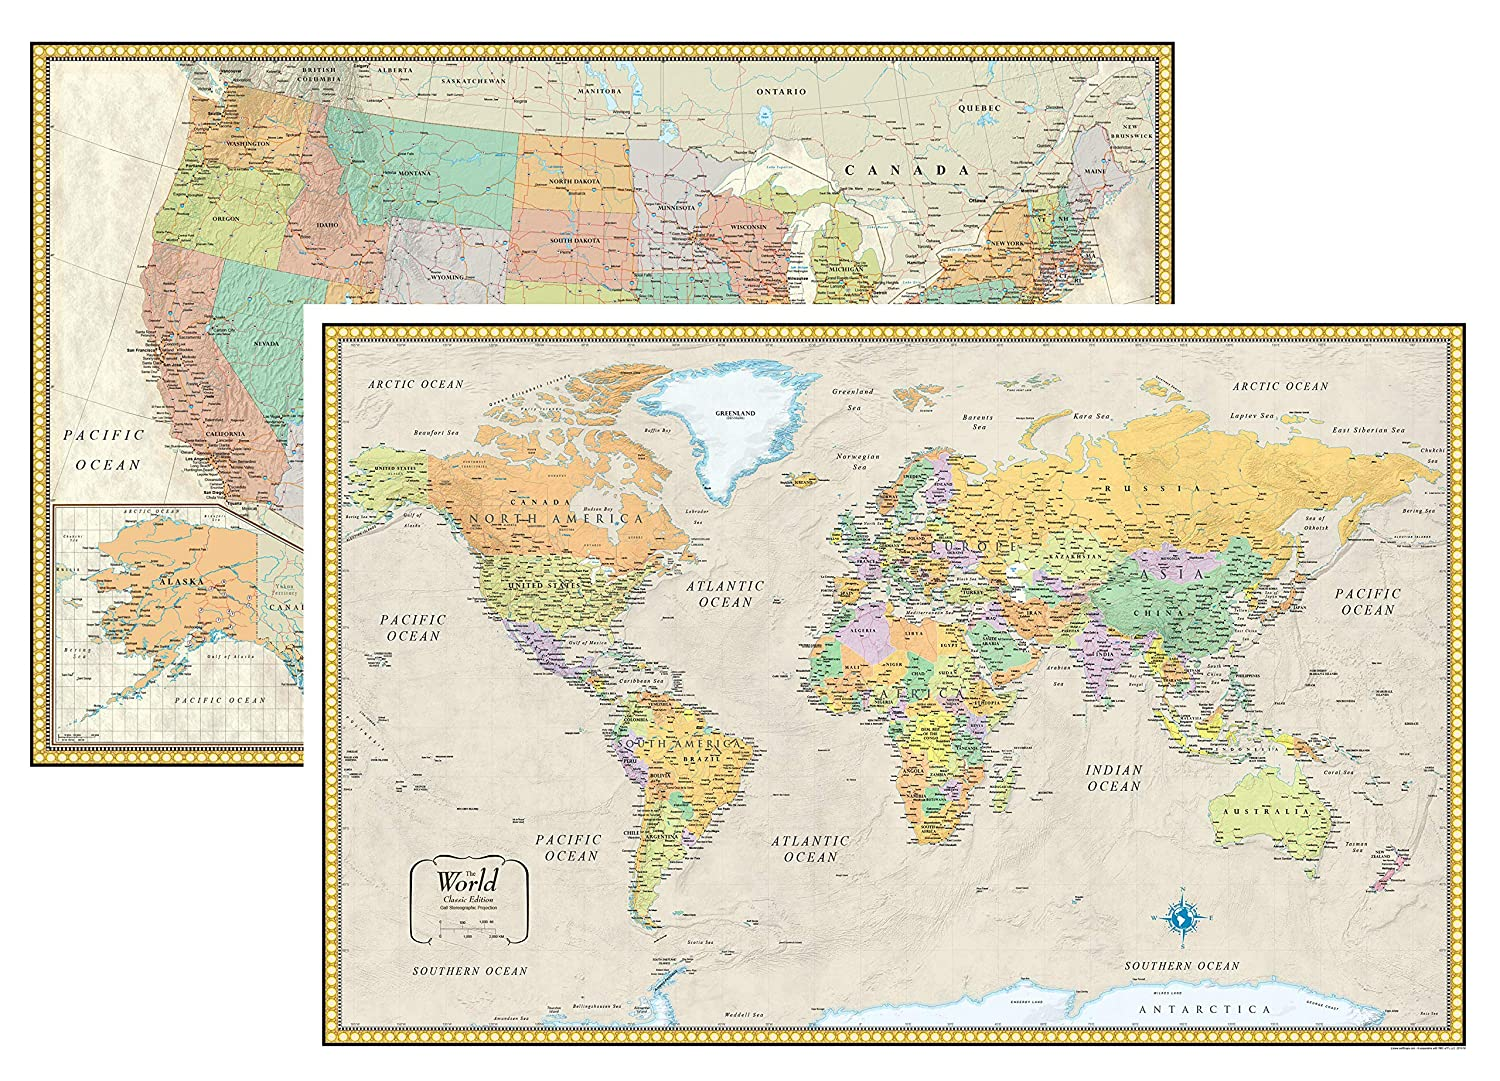 Amazon.com : RMC Clic United States USA and World Wall Map Set ... on